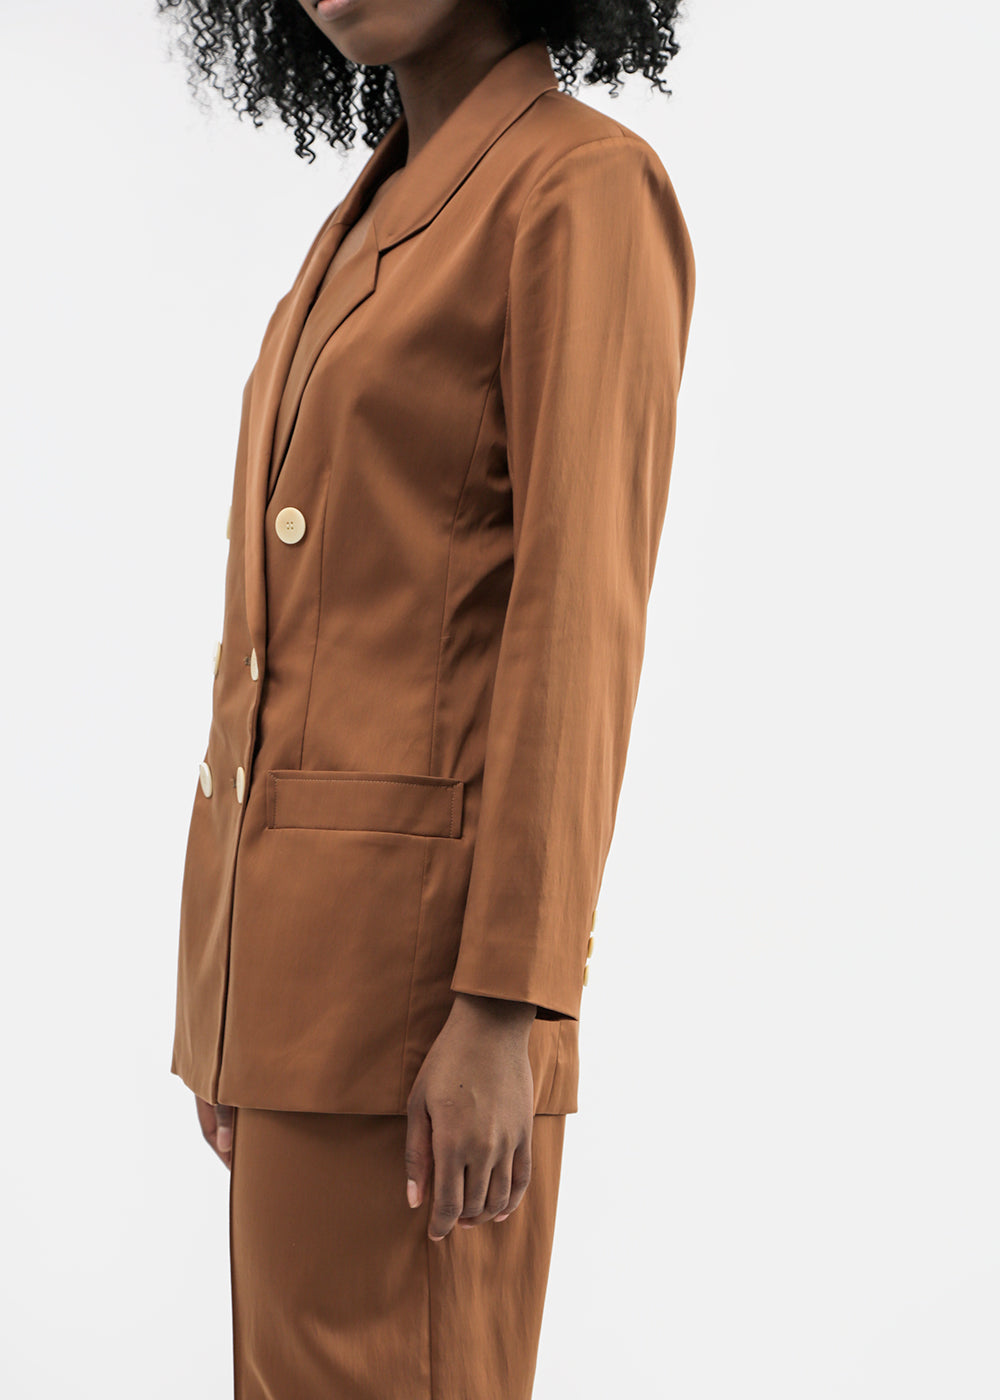 Arcana NYC Horologist Blazer — Shop sustainable fashion and slow fashion at New Classics Studios